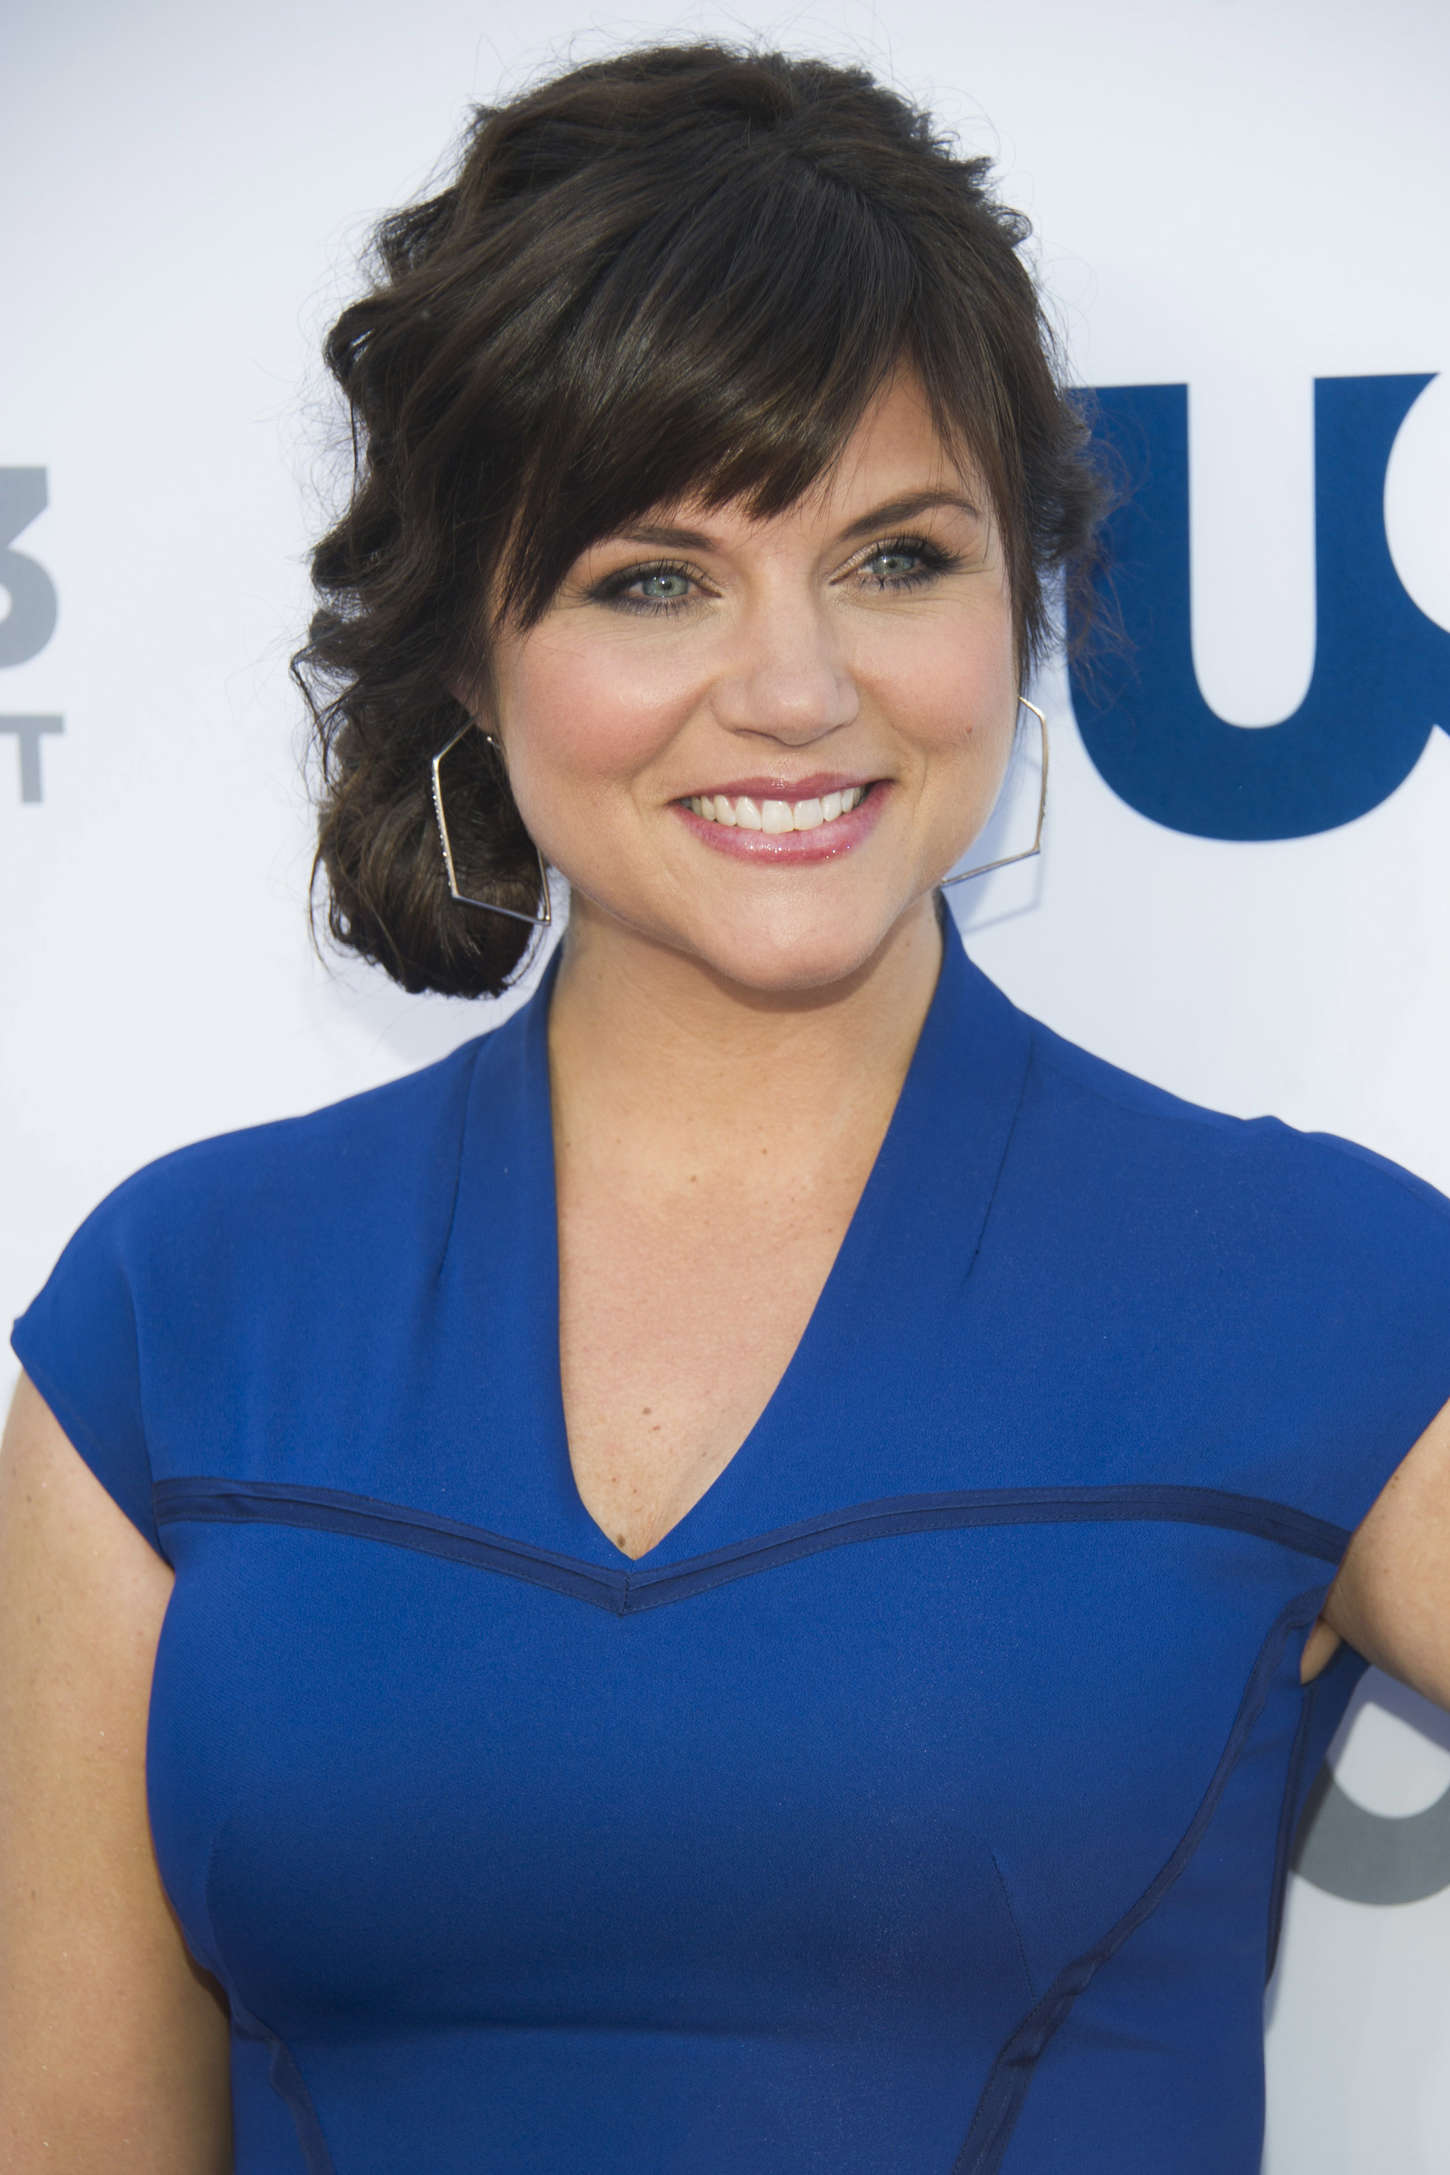 Tiffani Thiessen USA Network Upfront in New York